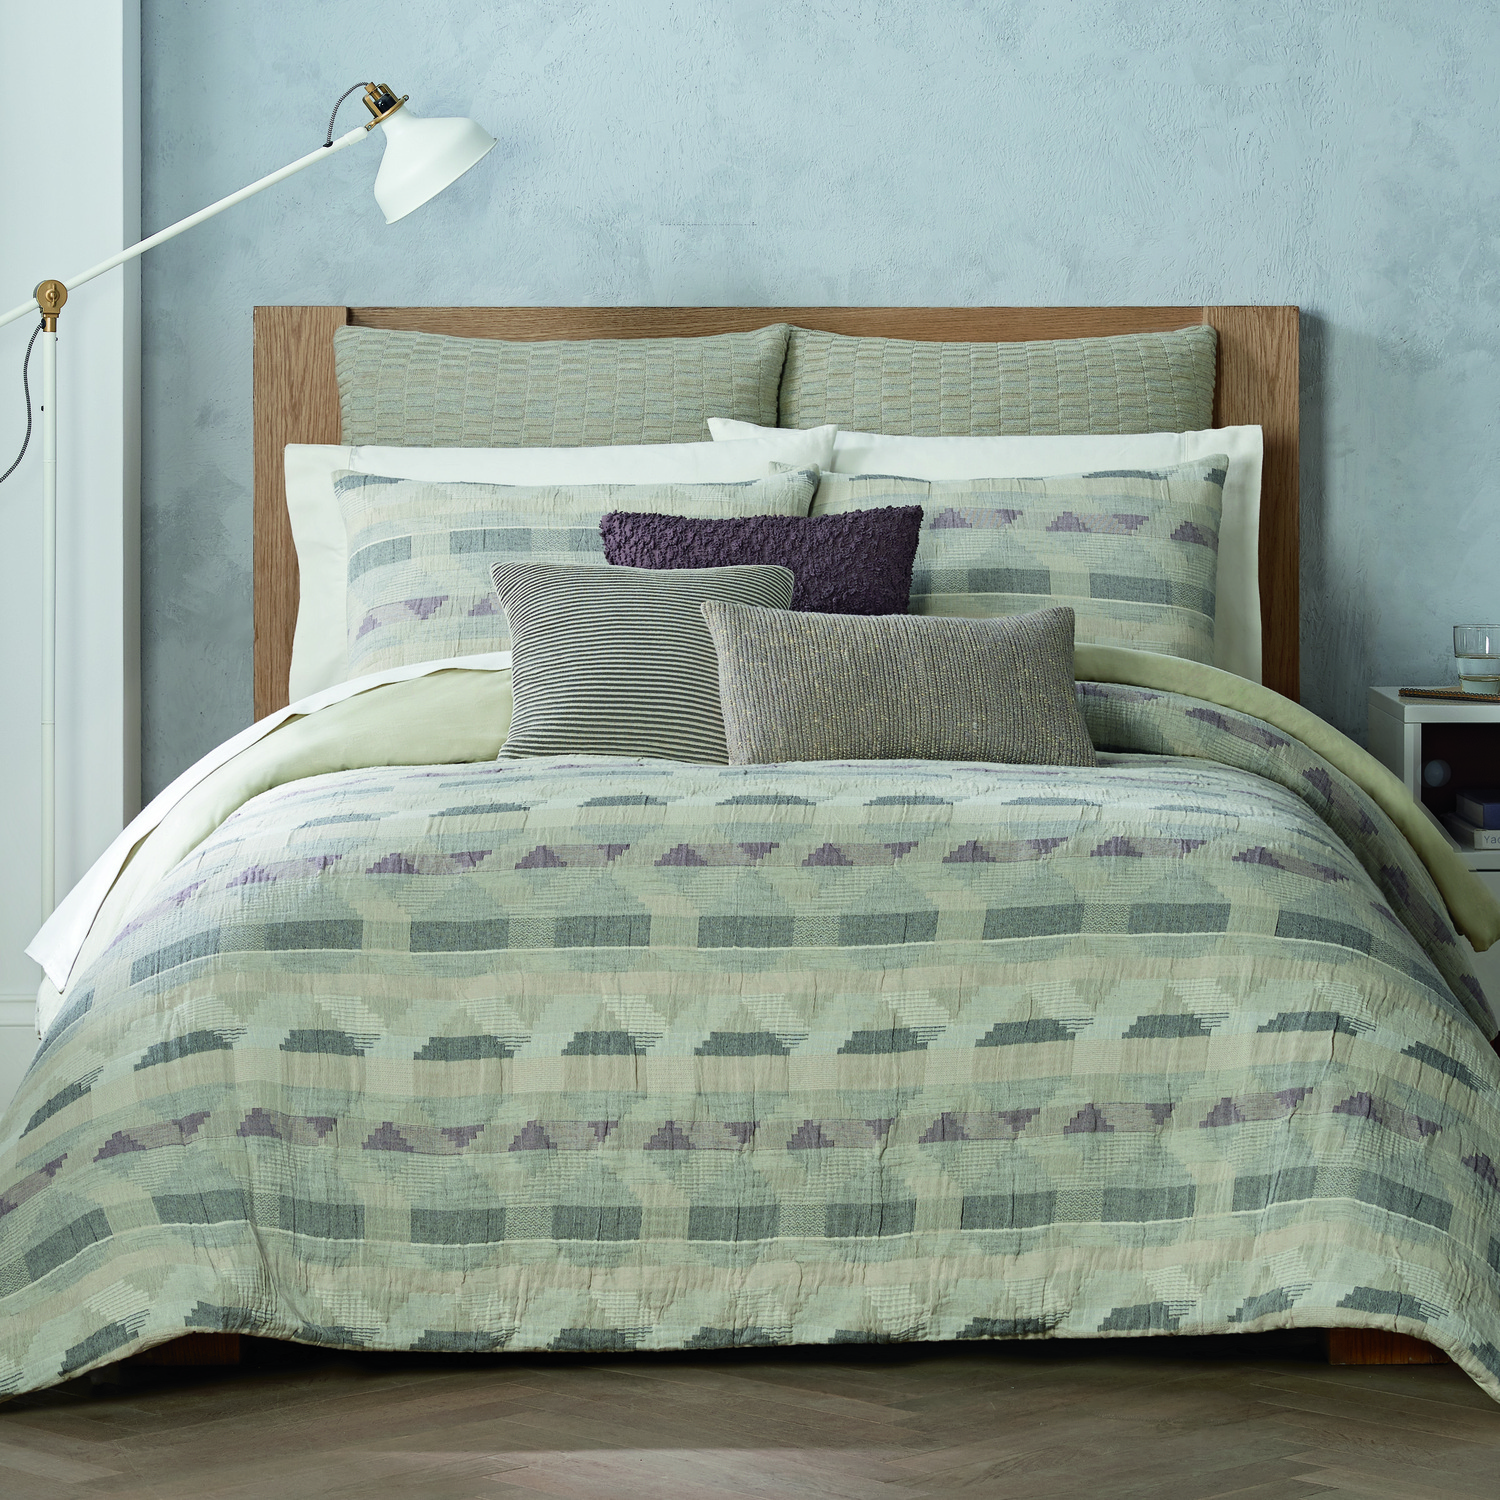 Ash Heather by Habit by Highline Bedding Co.